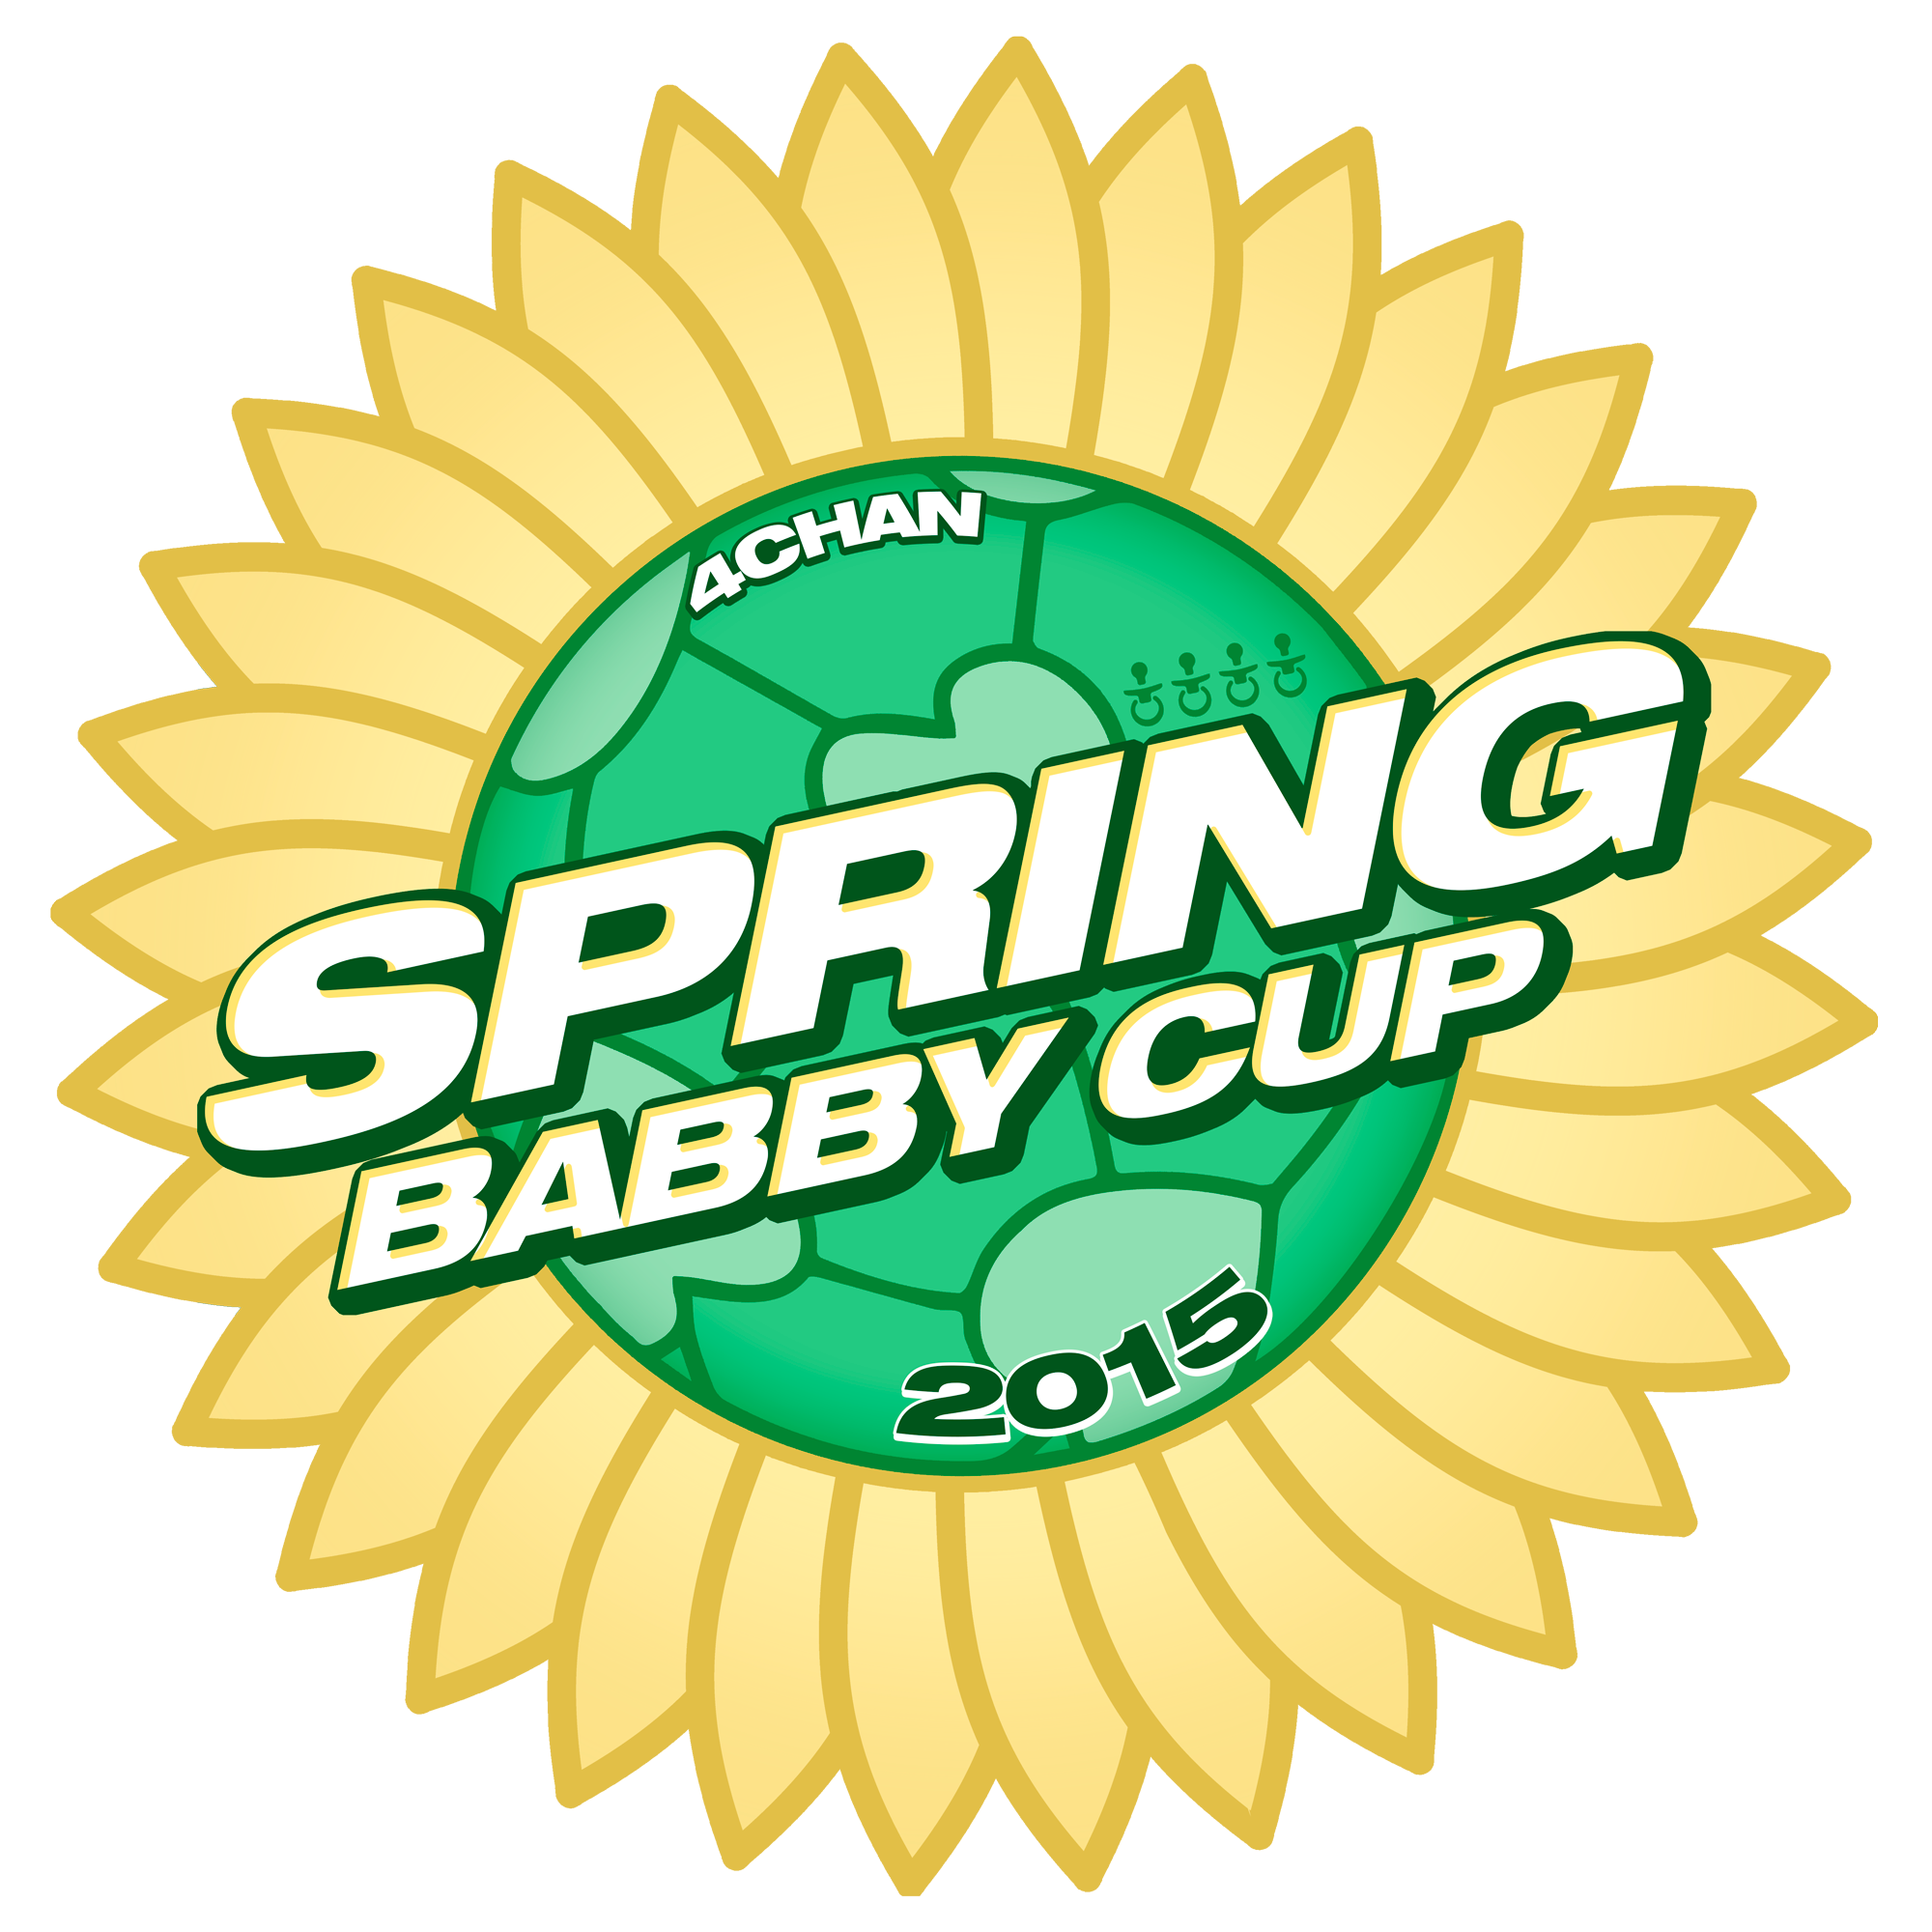 2015 4chan Spring Babby Cup